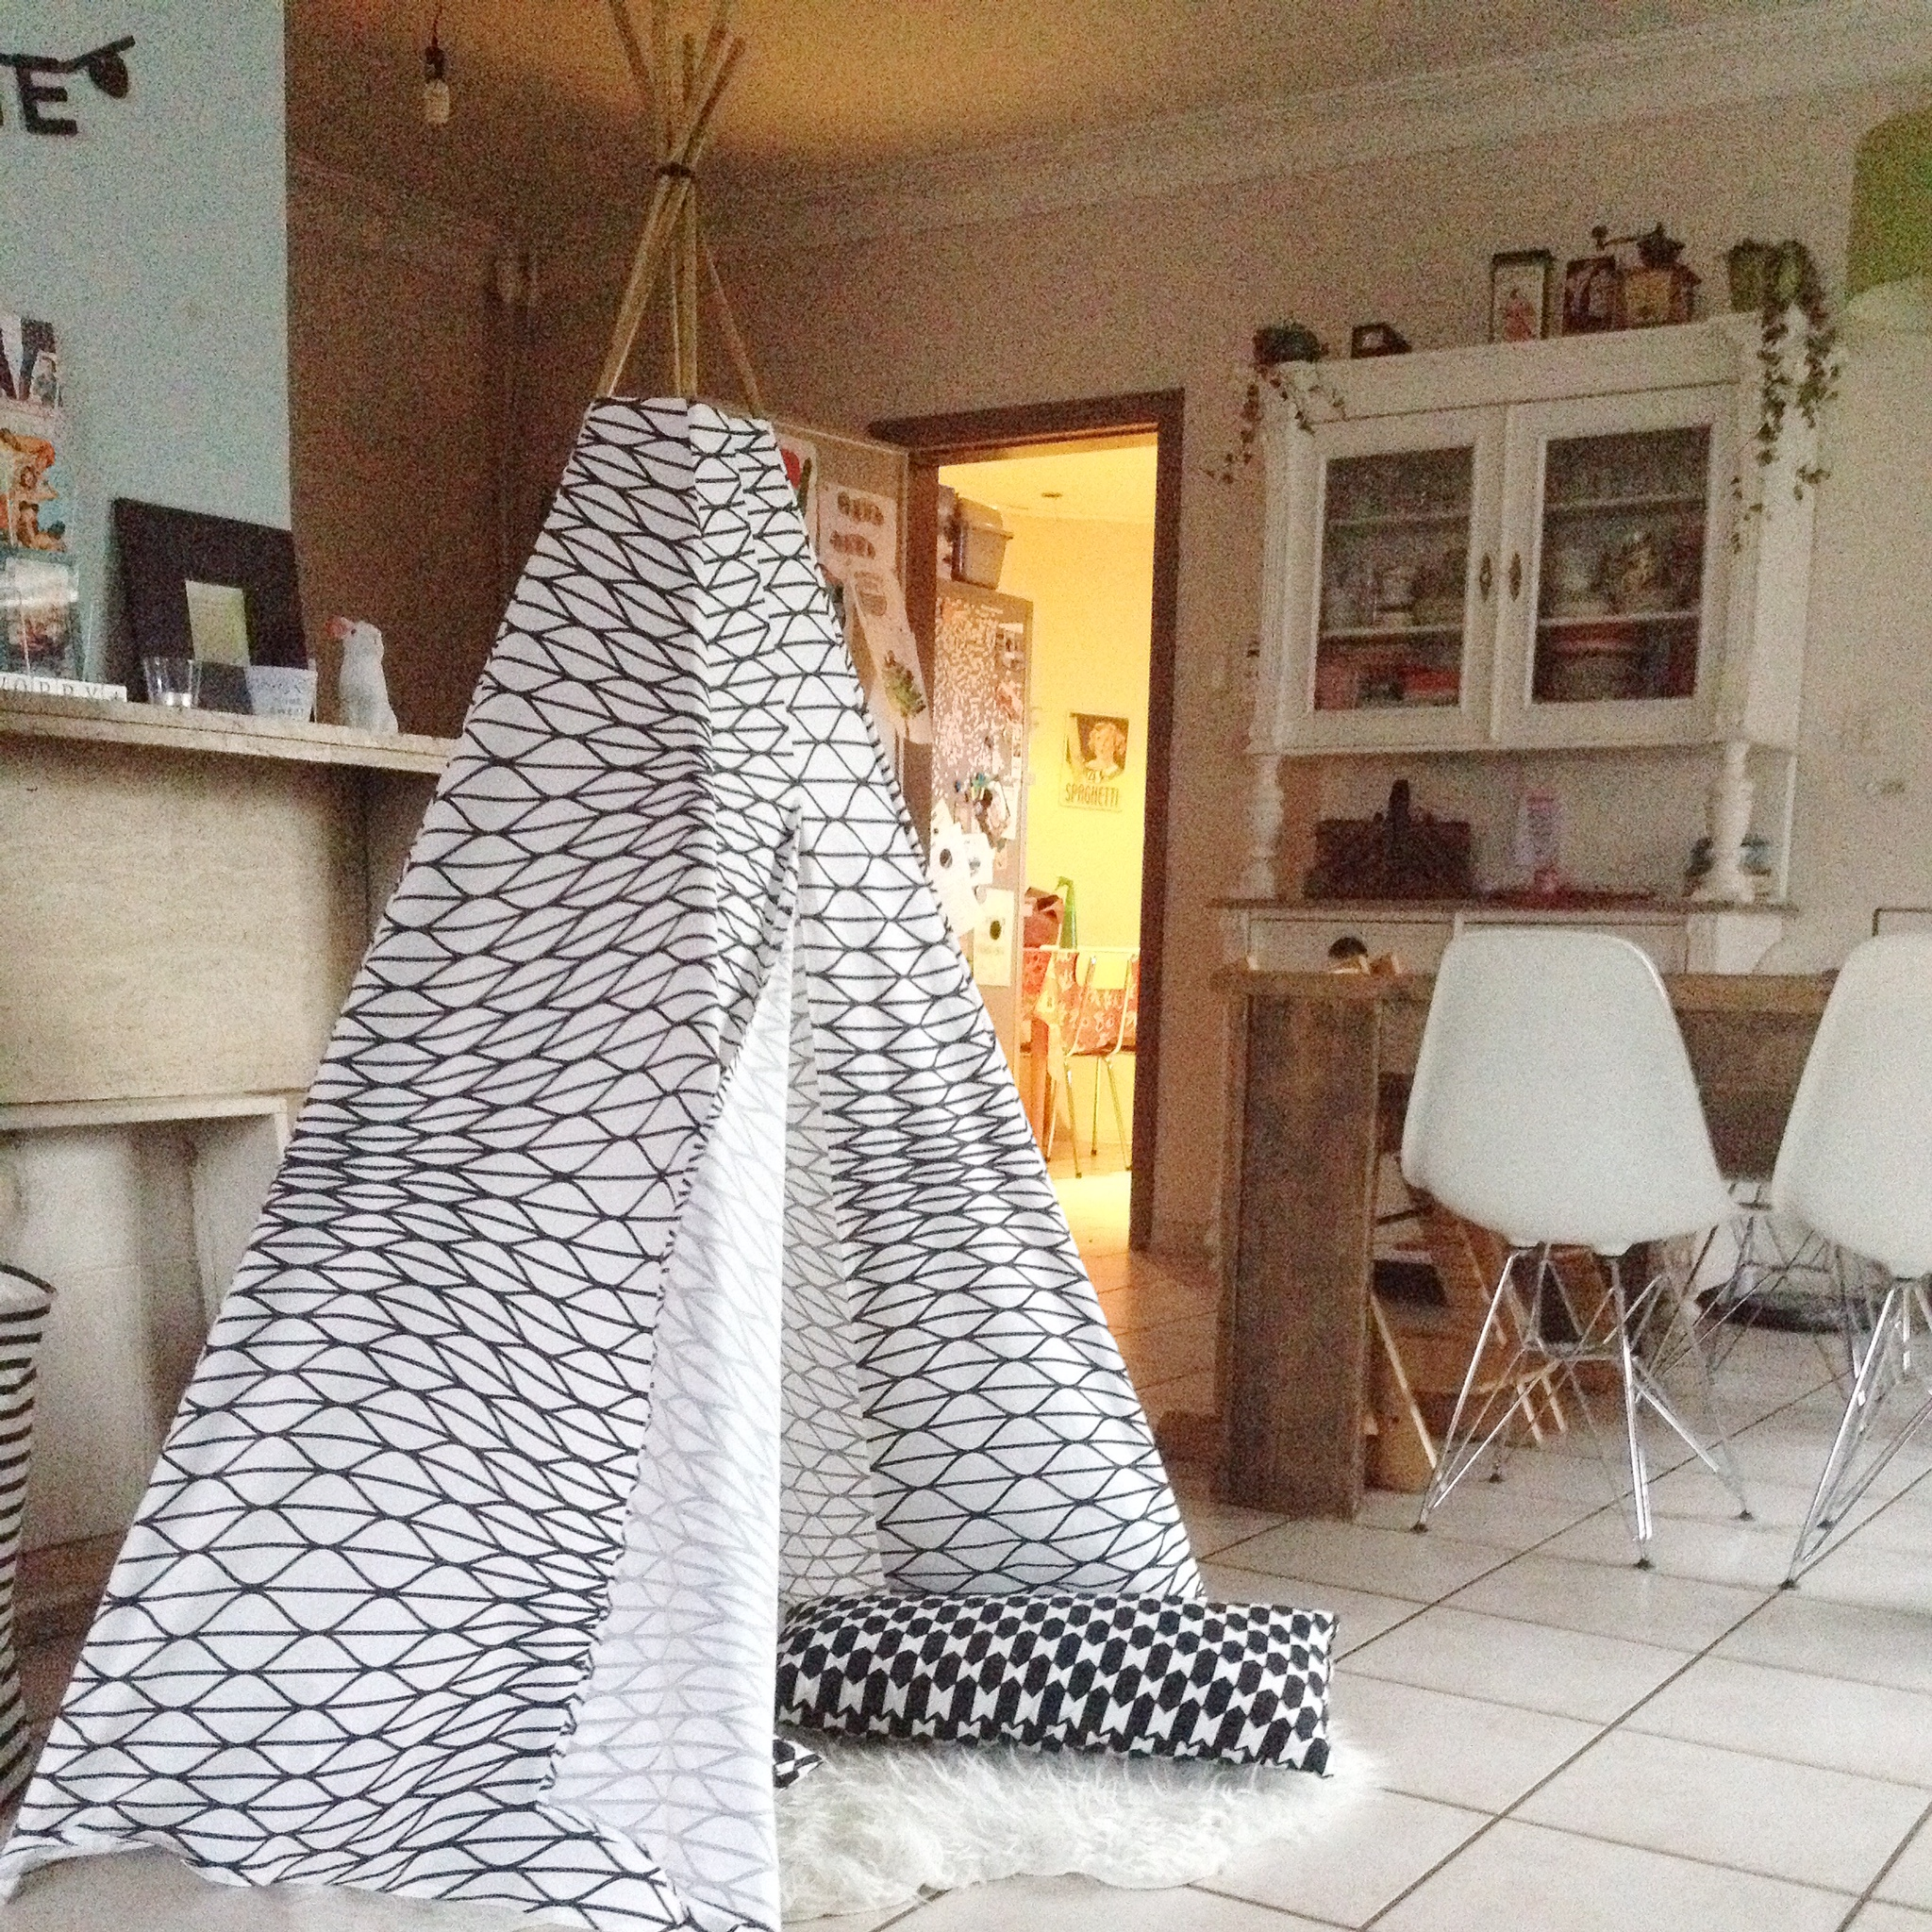 diy tipi zelf maken. Black Bedroom Furniture Sets. Home Design Ideas